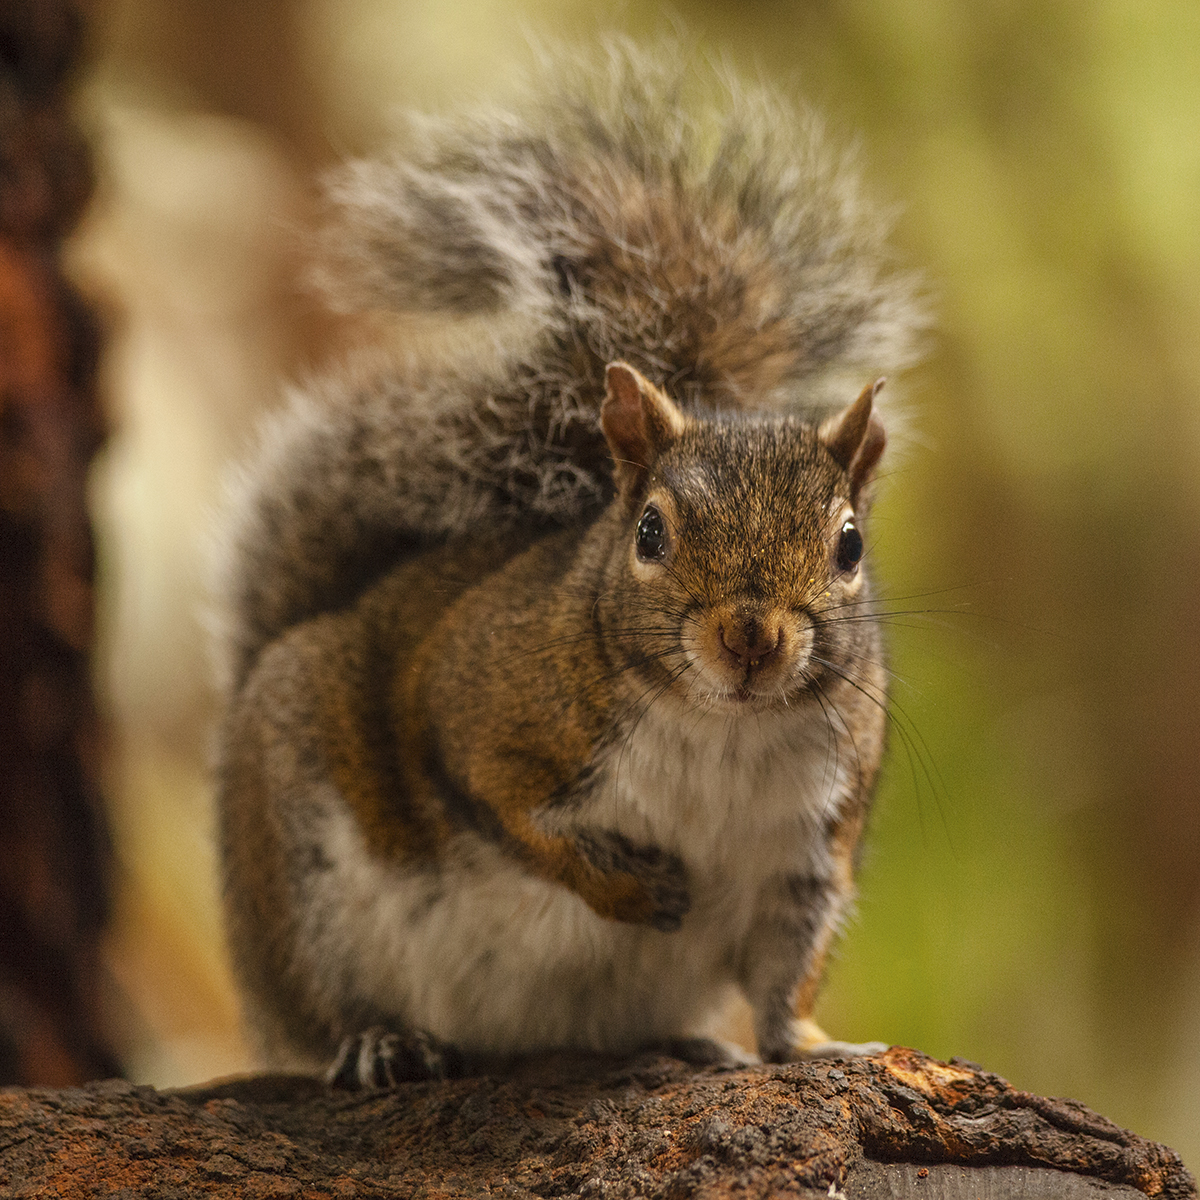 Photo appraisal: Squirrel